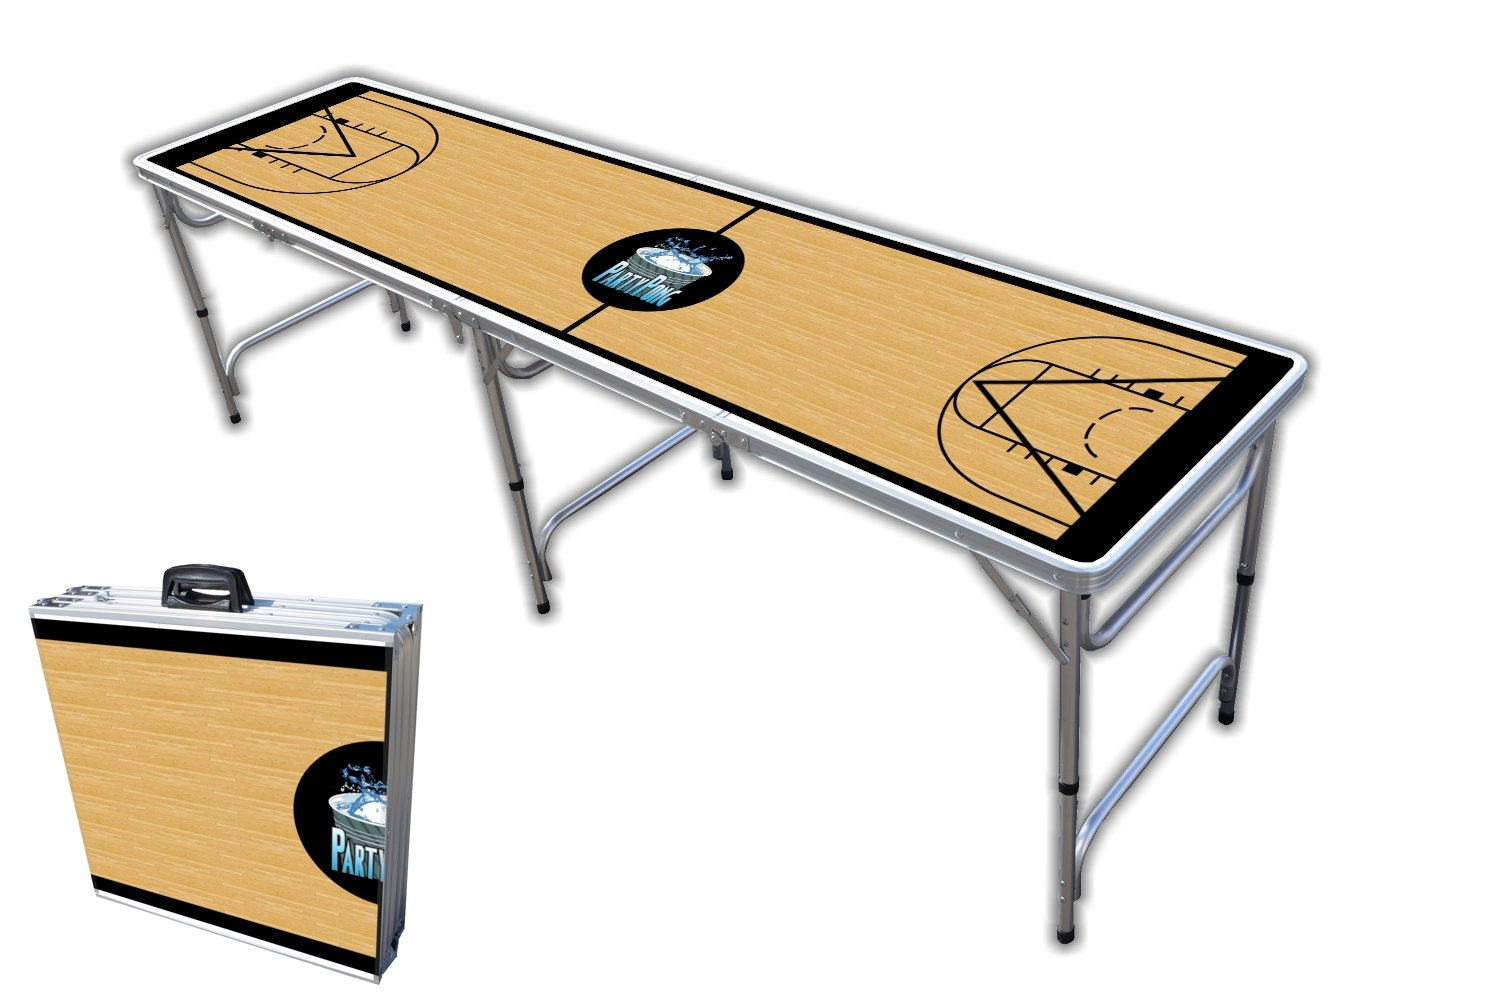 8-Foot Professional Beer Pong Table - Basketball Court Graphic